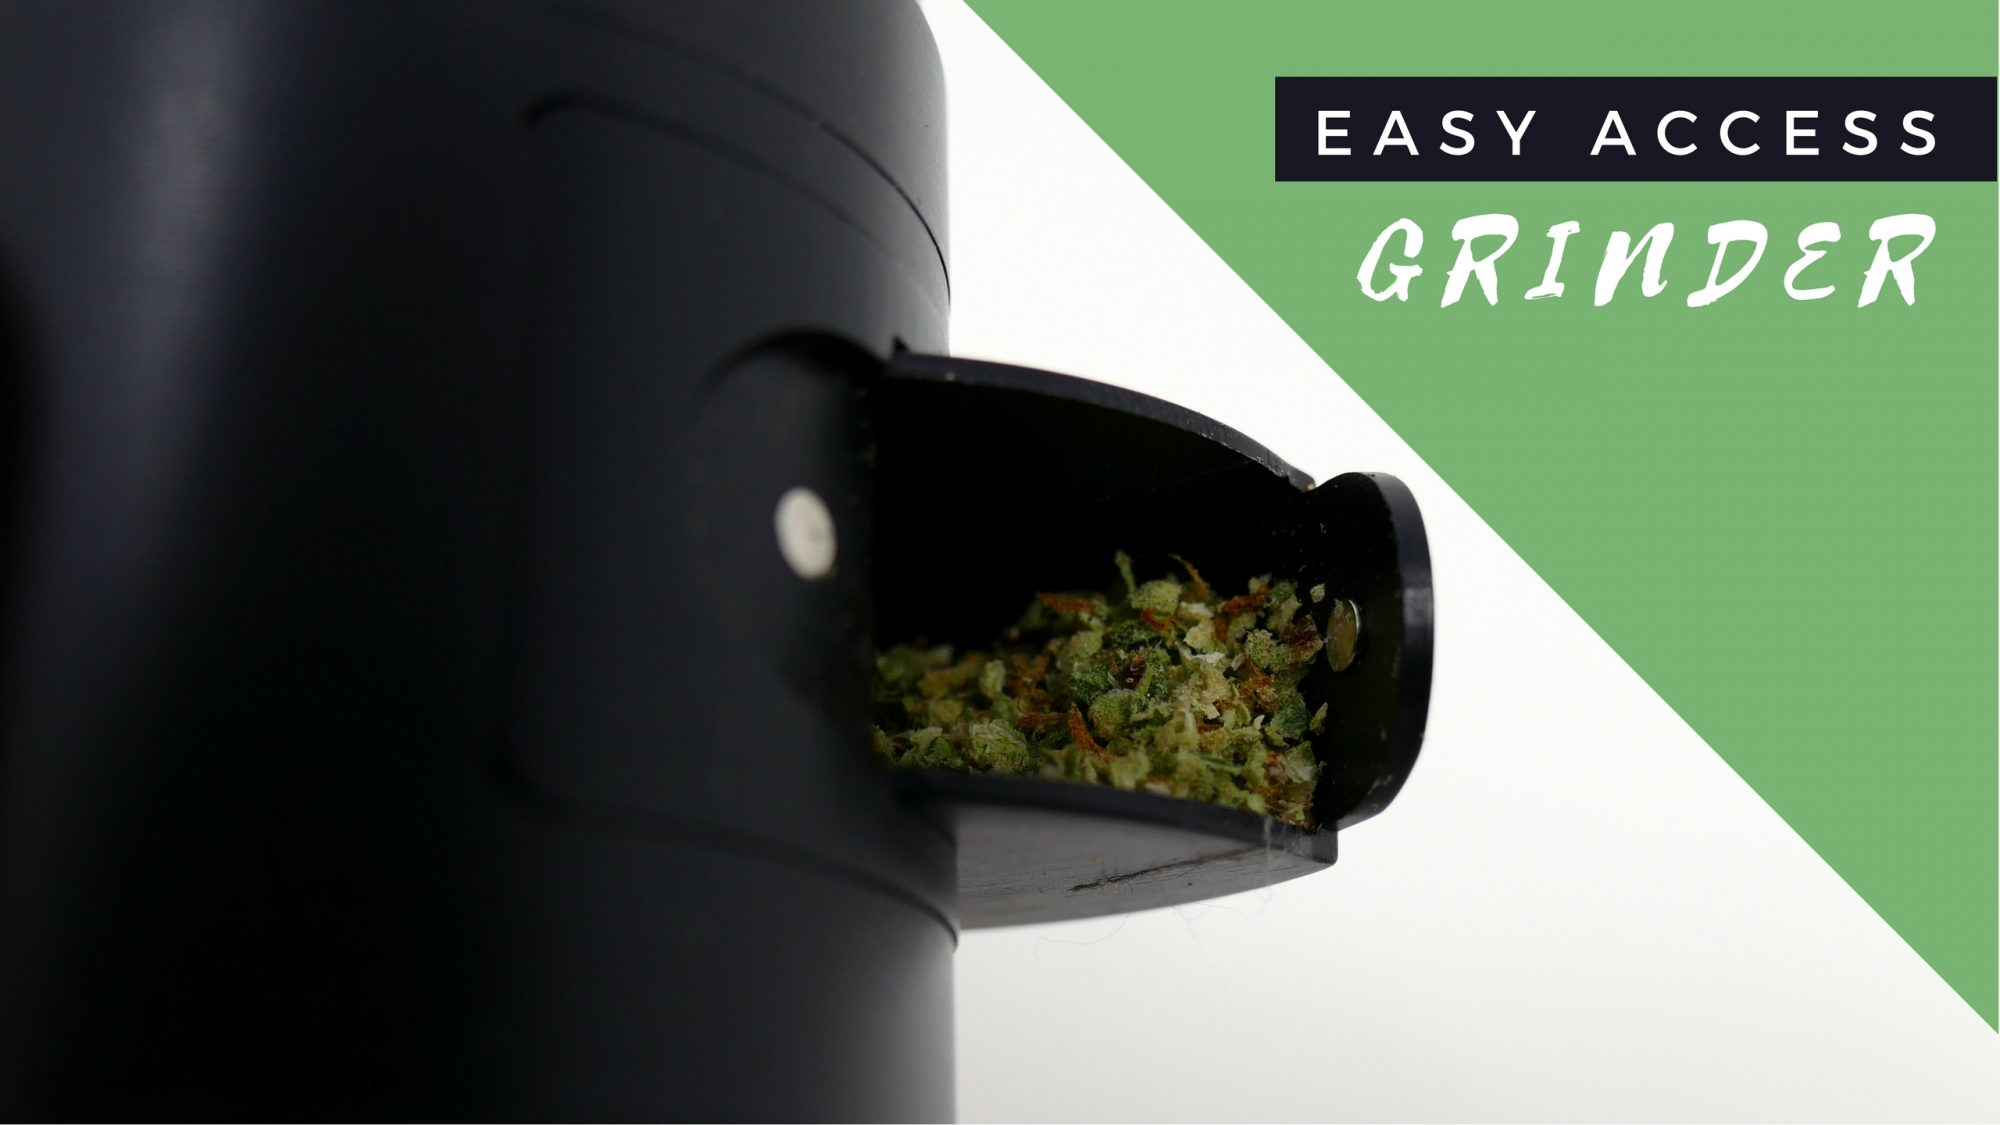 Easy Access Grinder